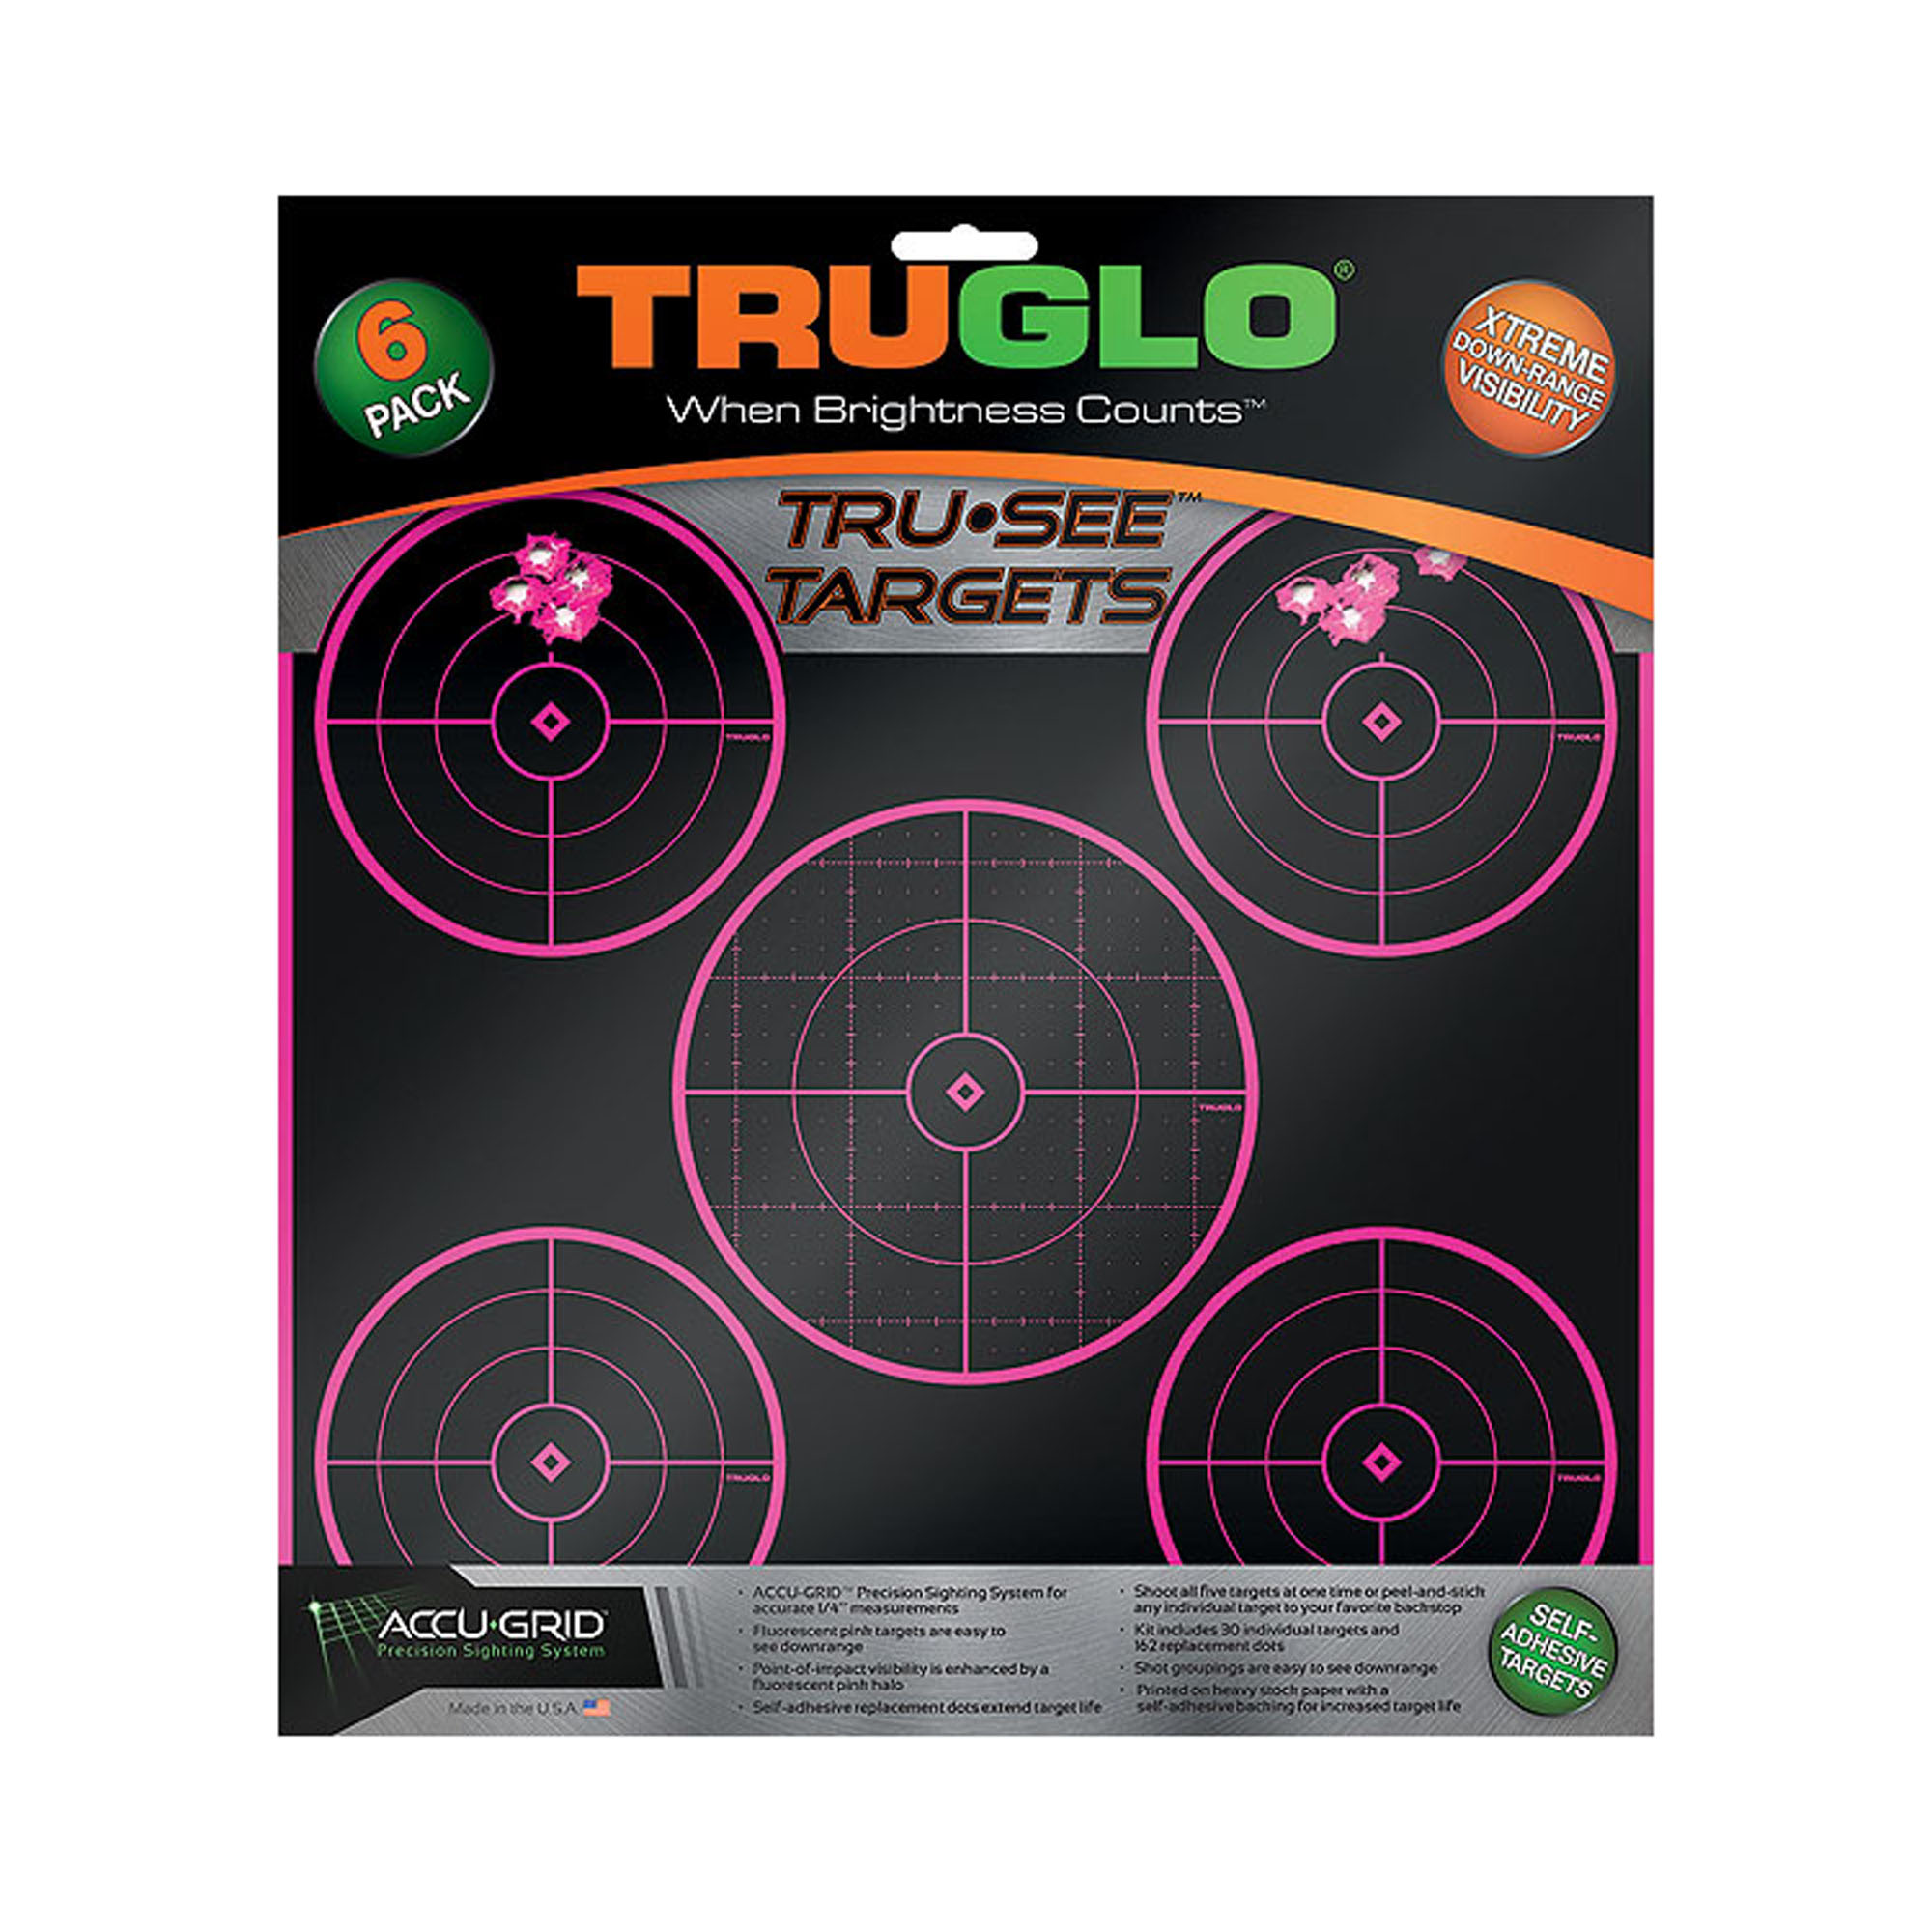 Truglo Target 5-Bull 12x12 Pink, 6 Pack